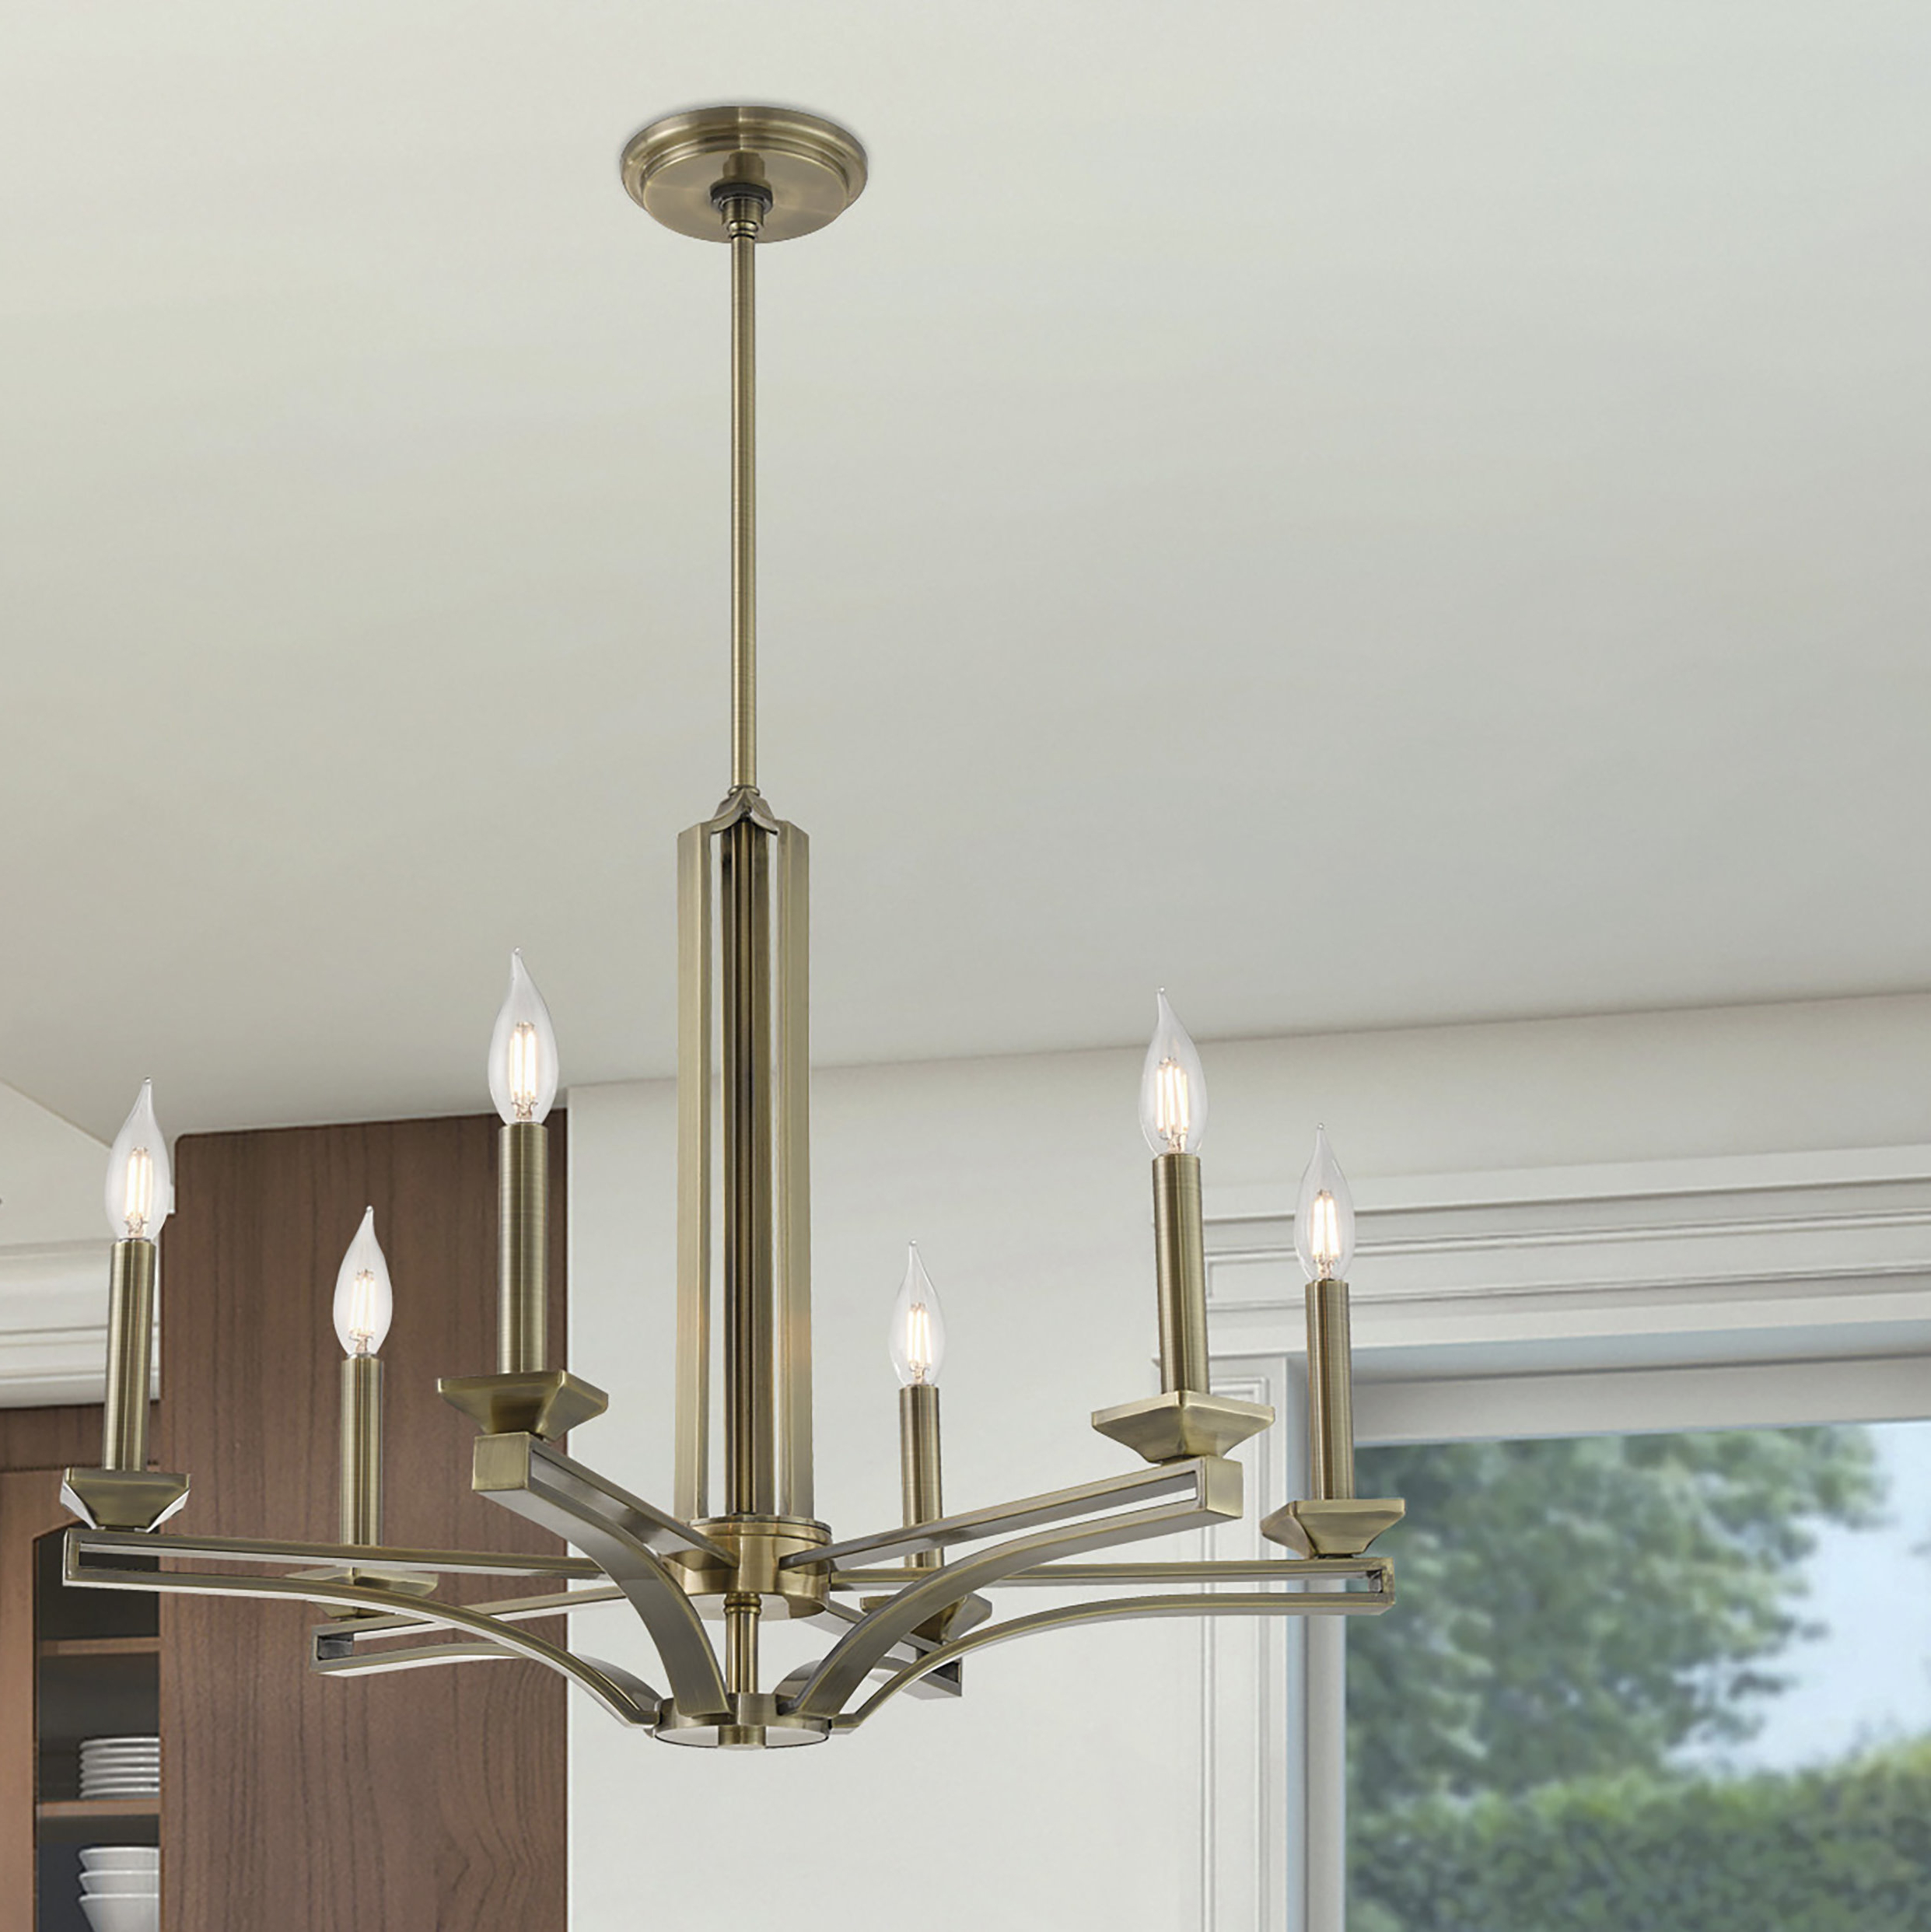 Most Popular Hesse 5 Light Candle Style Chandeliers With Dedham 6 Light Candle Style Chandelier (View 15 of 20)